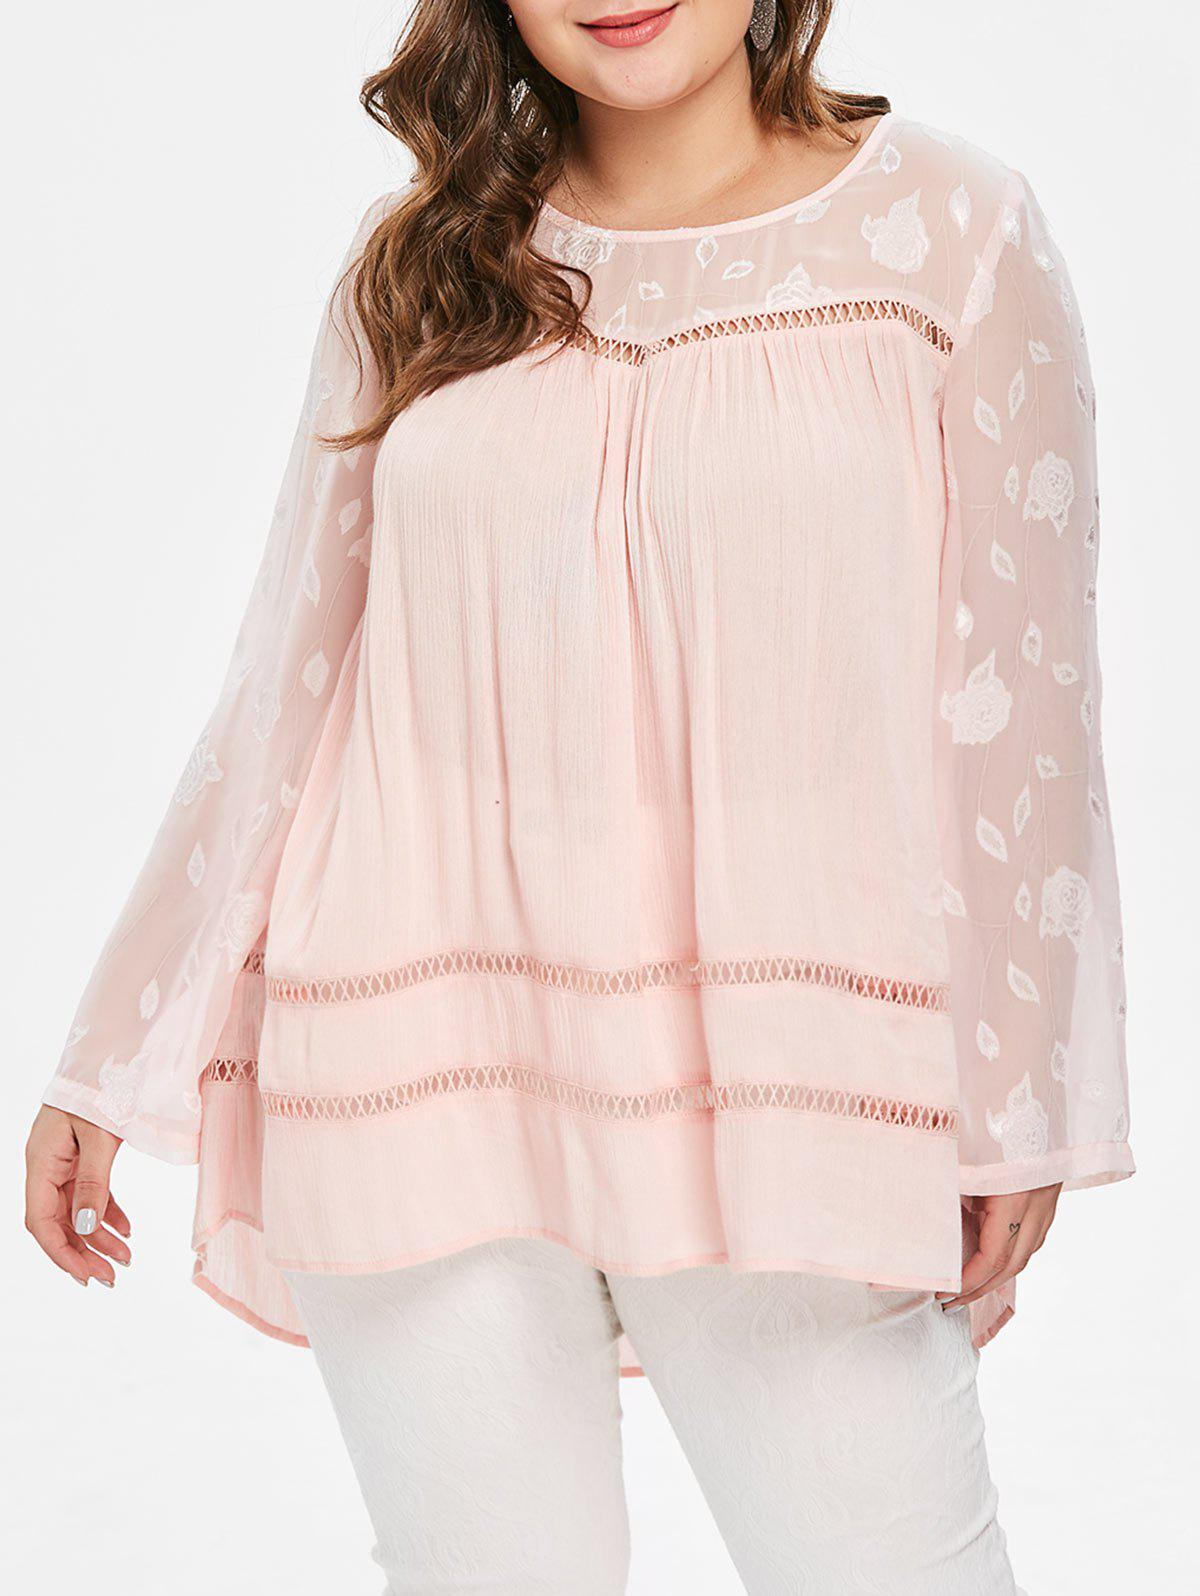 Discount Plus Size Spliced Hollow Out Tunic Top